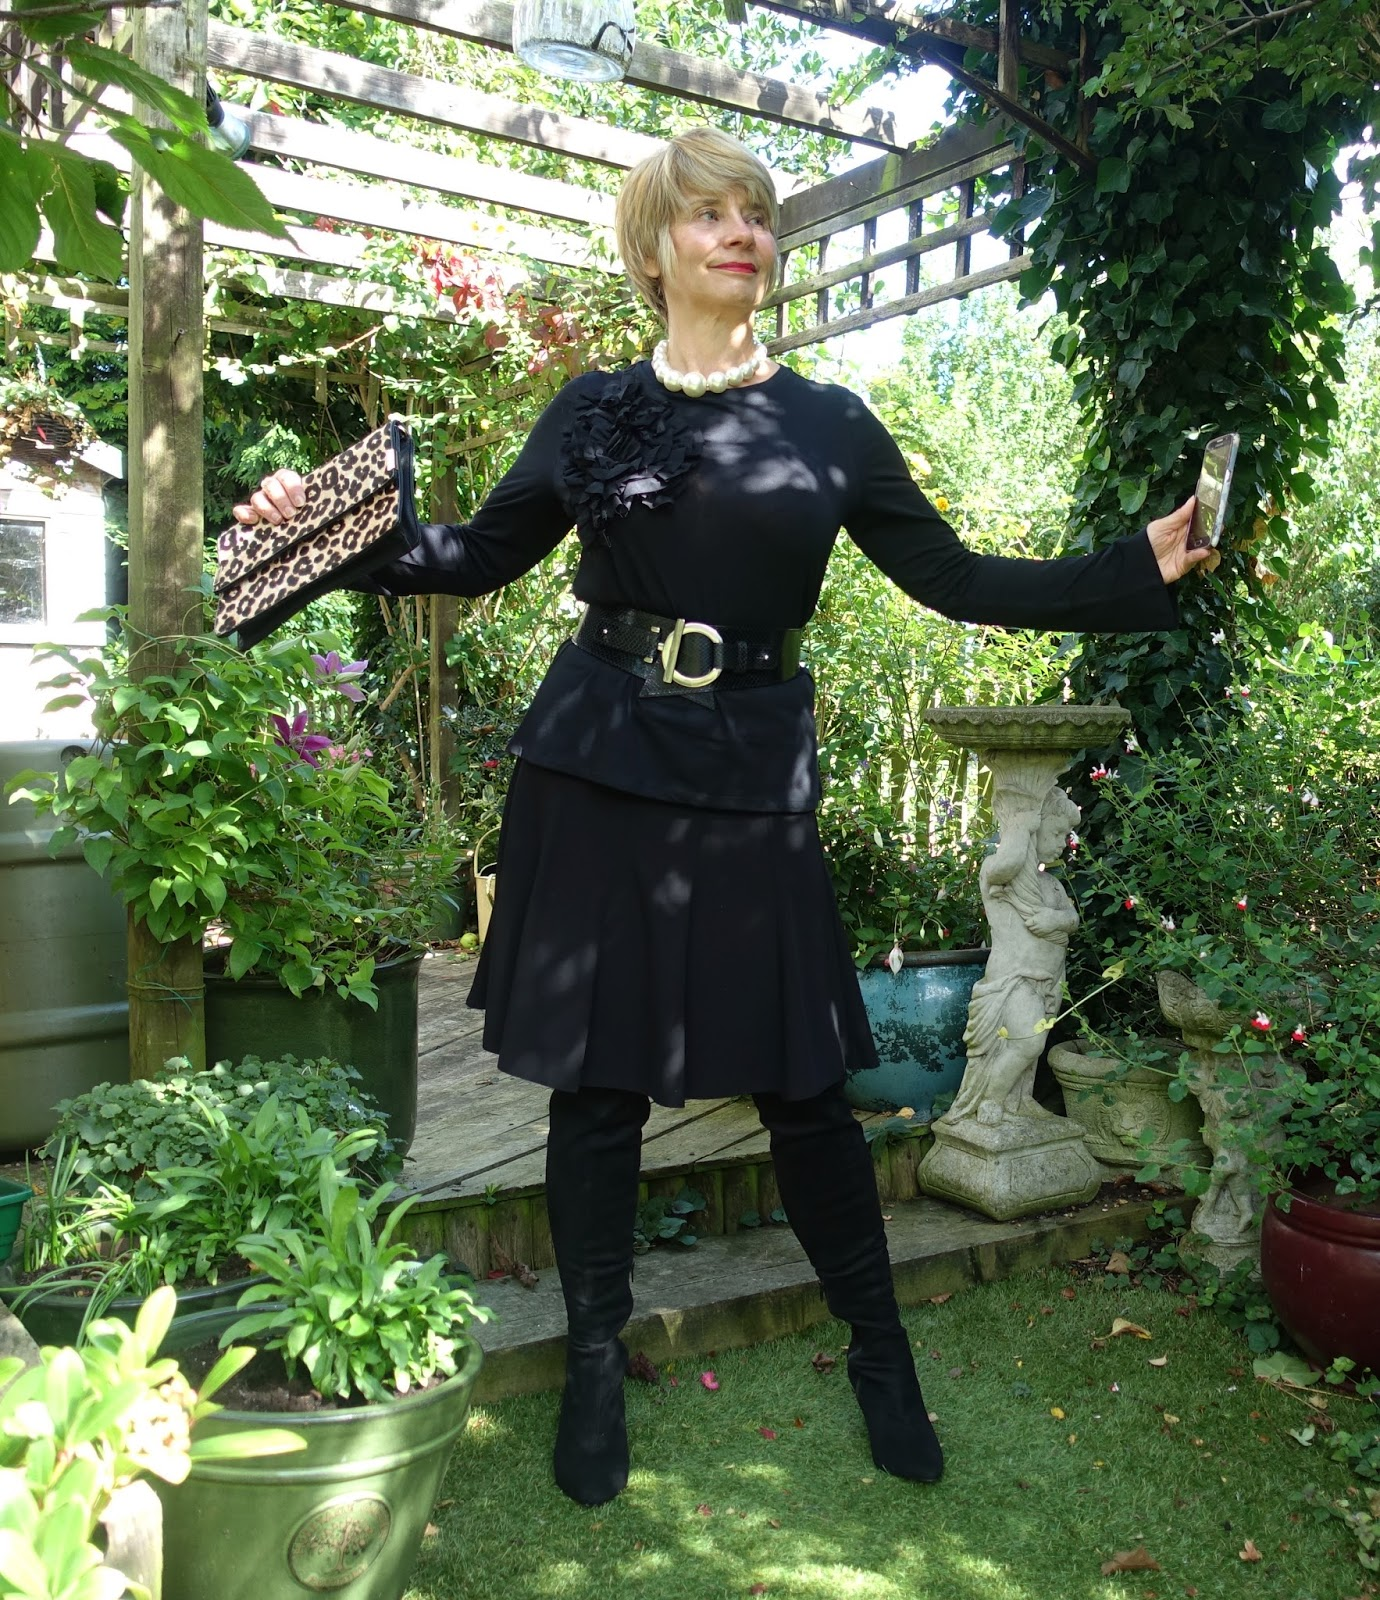 Is This Mutton blogger Gail Hanlon in an all black outfit